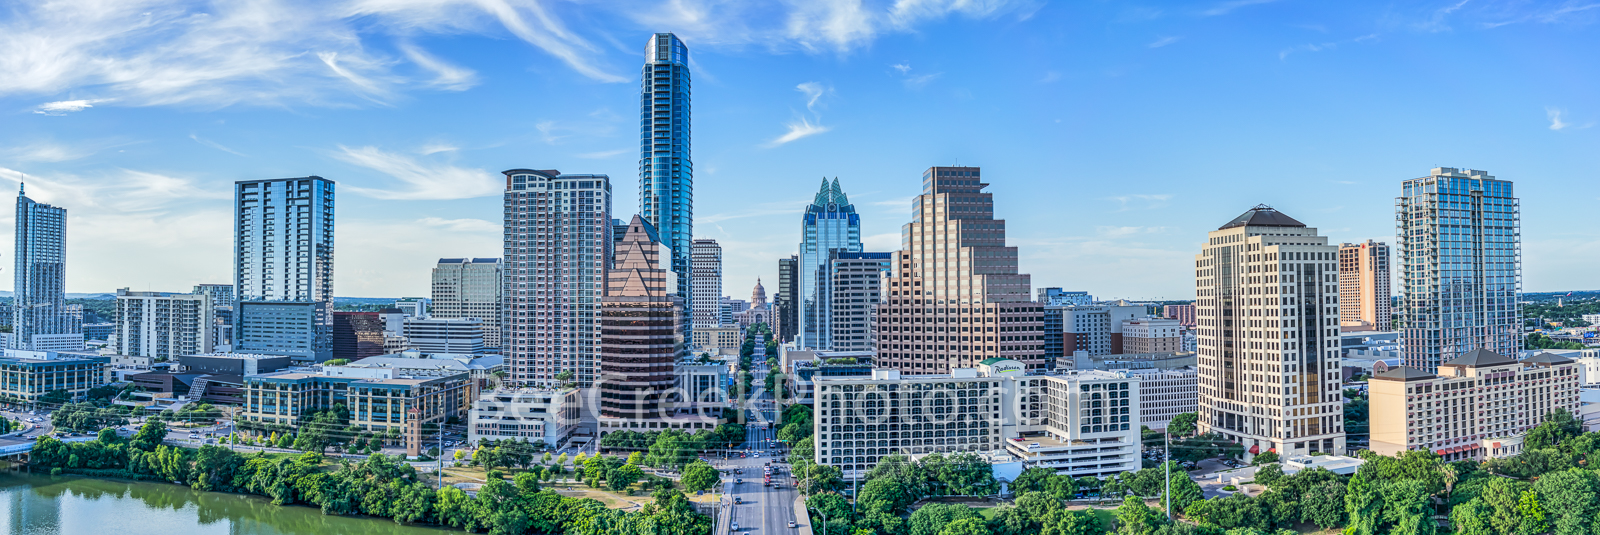 Austin Skyline, Austin, skyline, downtown, austin downtown, images of texas,  austin tx, austin texas, city of austin,  austin skyline pictures, drone, texas pictures, , photo